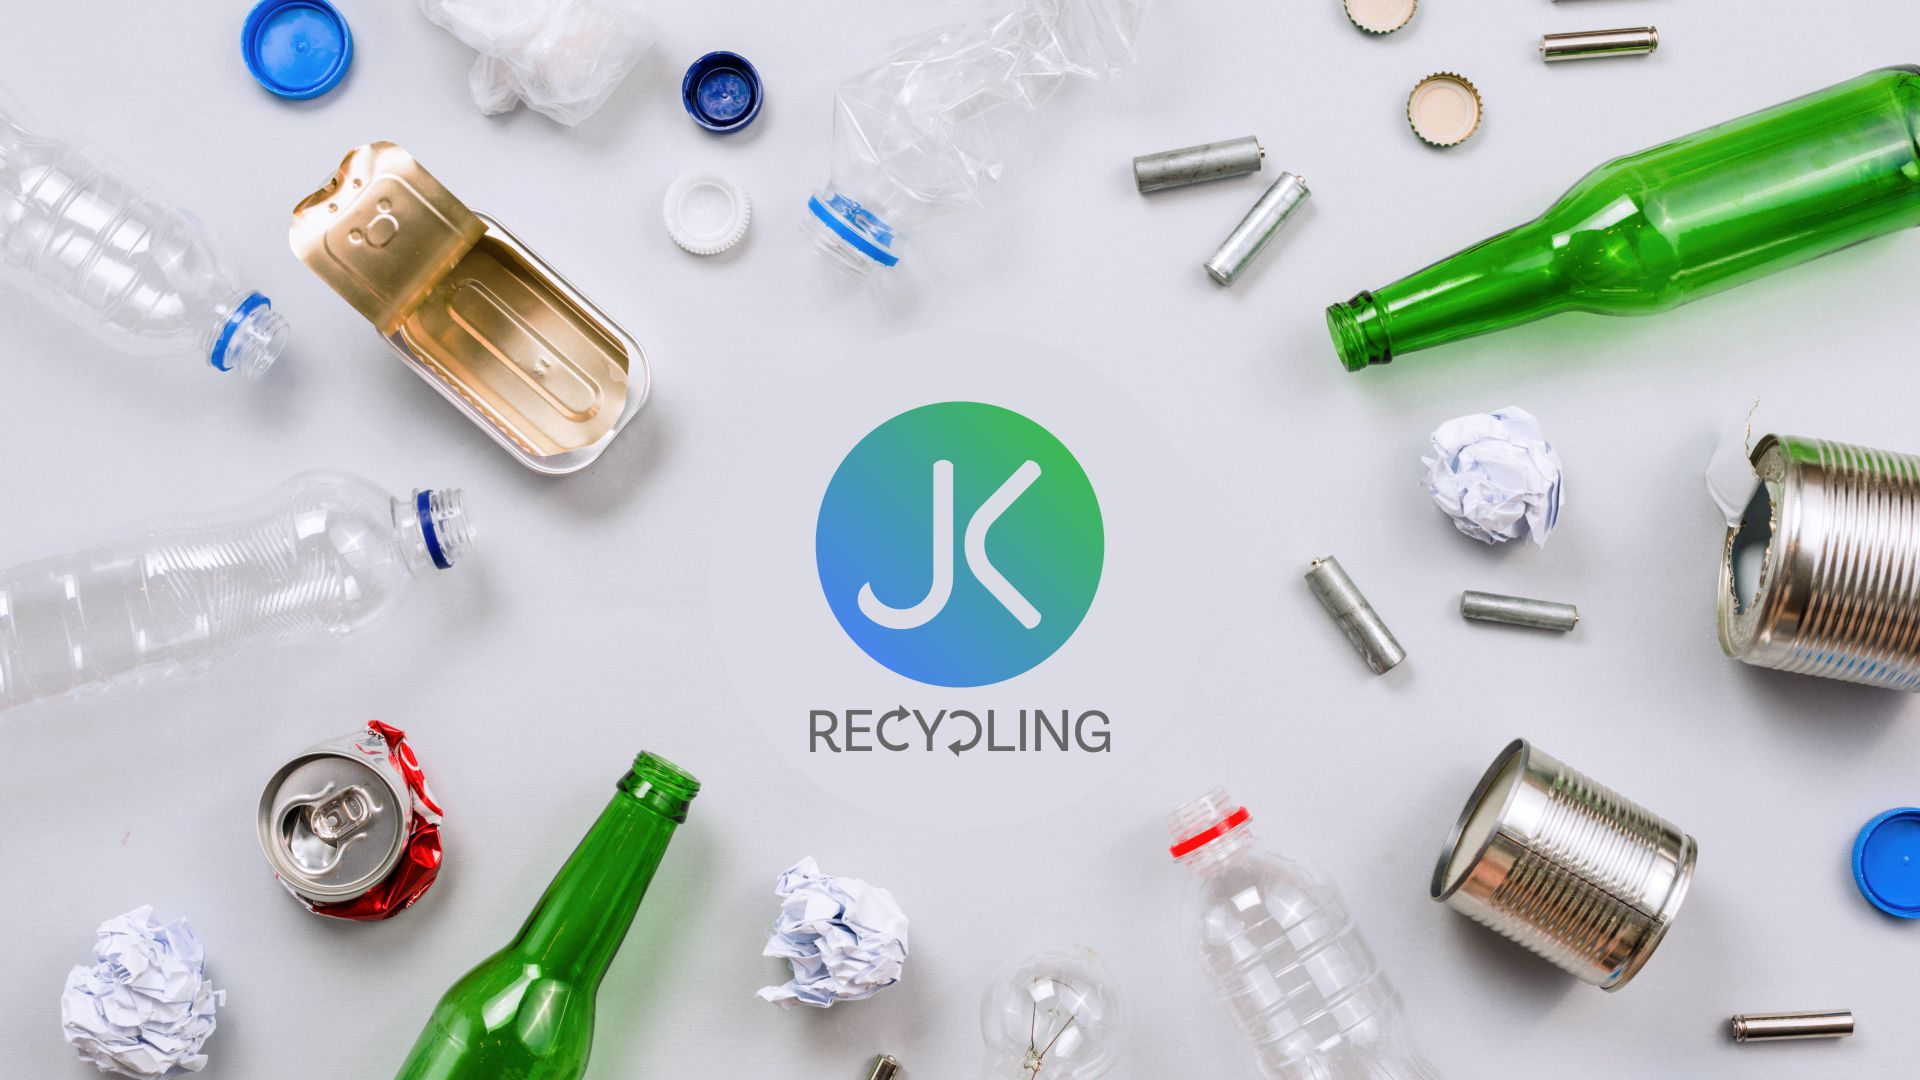 Recycling Industry Logo Design With Golden Ratio Cover Image